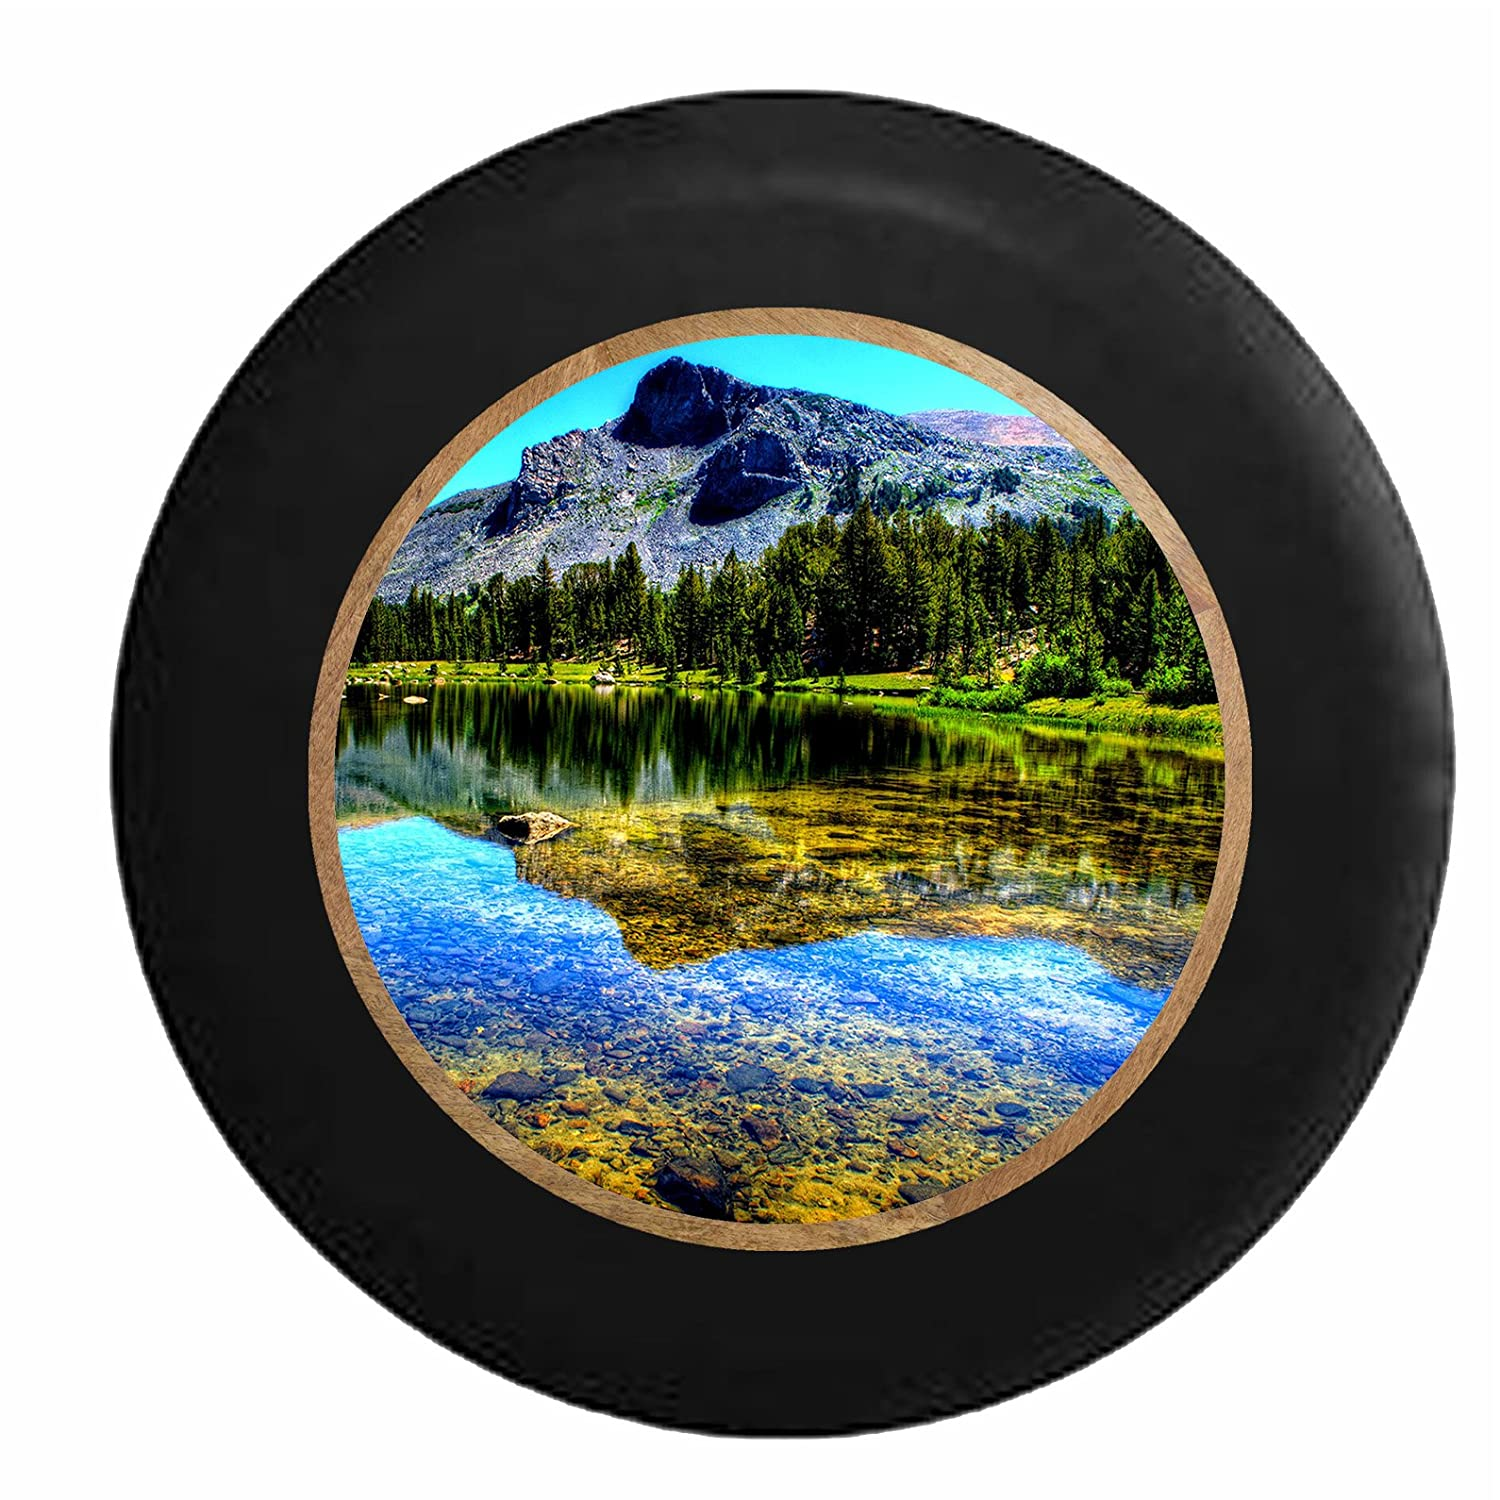 Mountain Backdrop Jeep RV Camper Spare Tire Cover Black 29 in Full Color Clear Smooth Lake Water Pine Forest